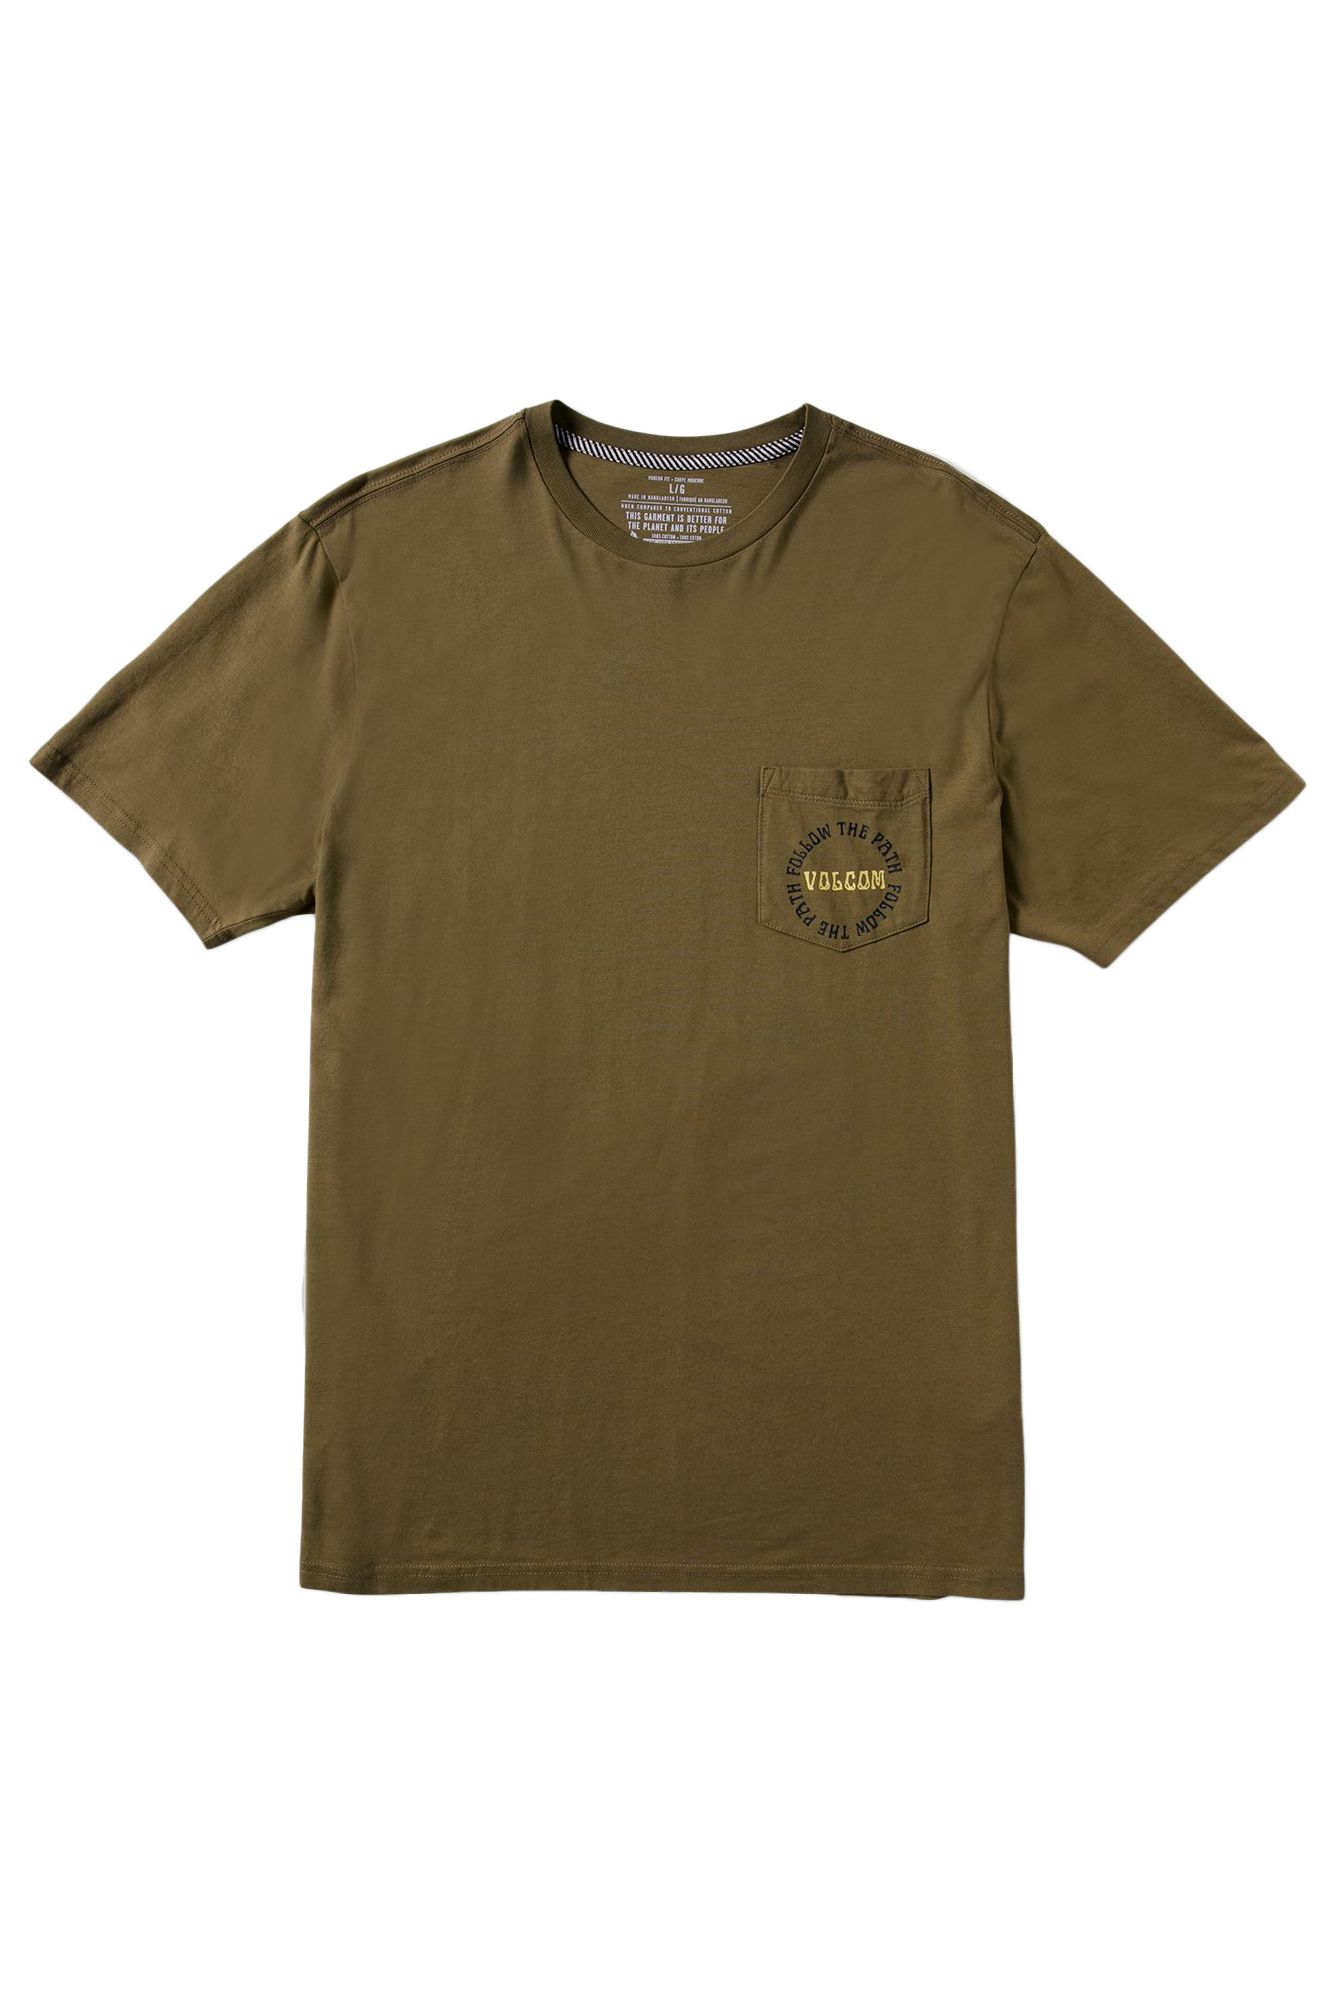 T-Shirt Volcom DITHER S/S TEE Old Mill